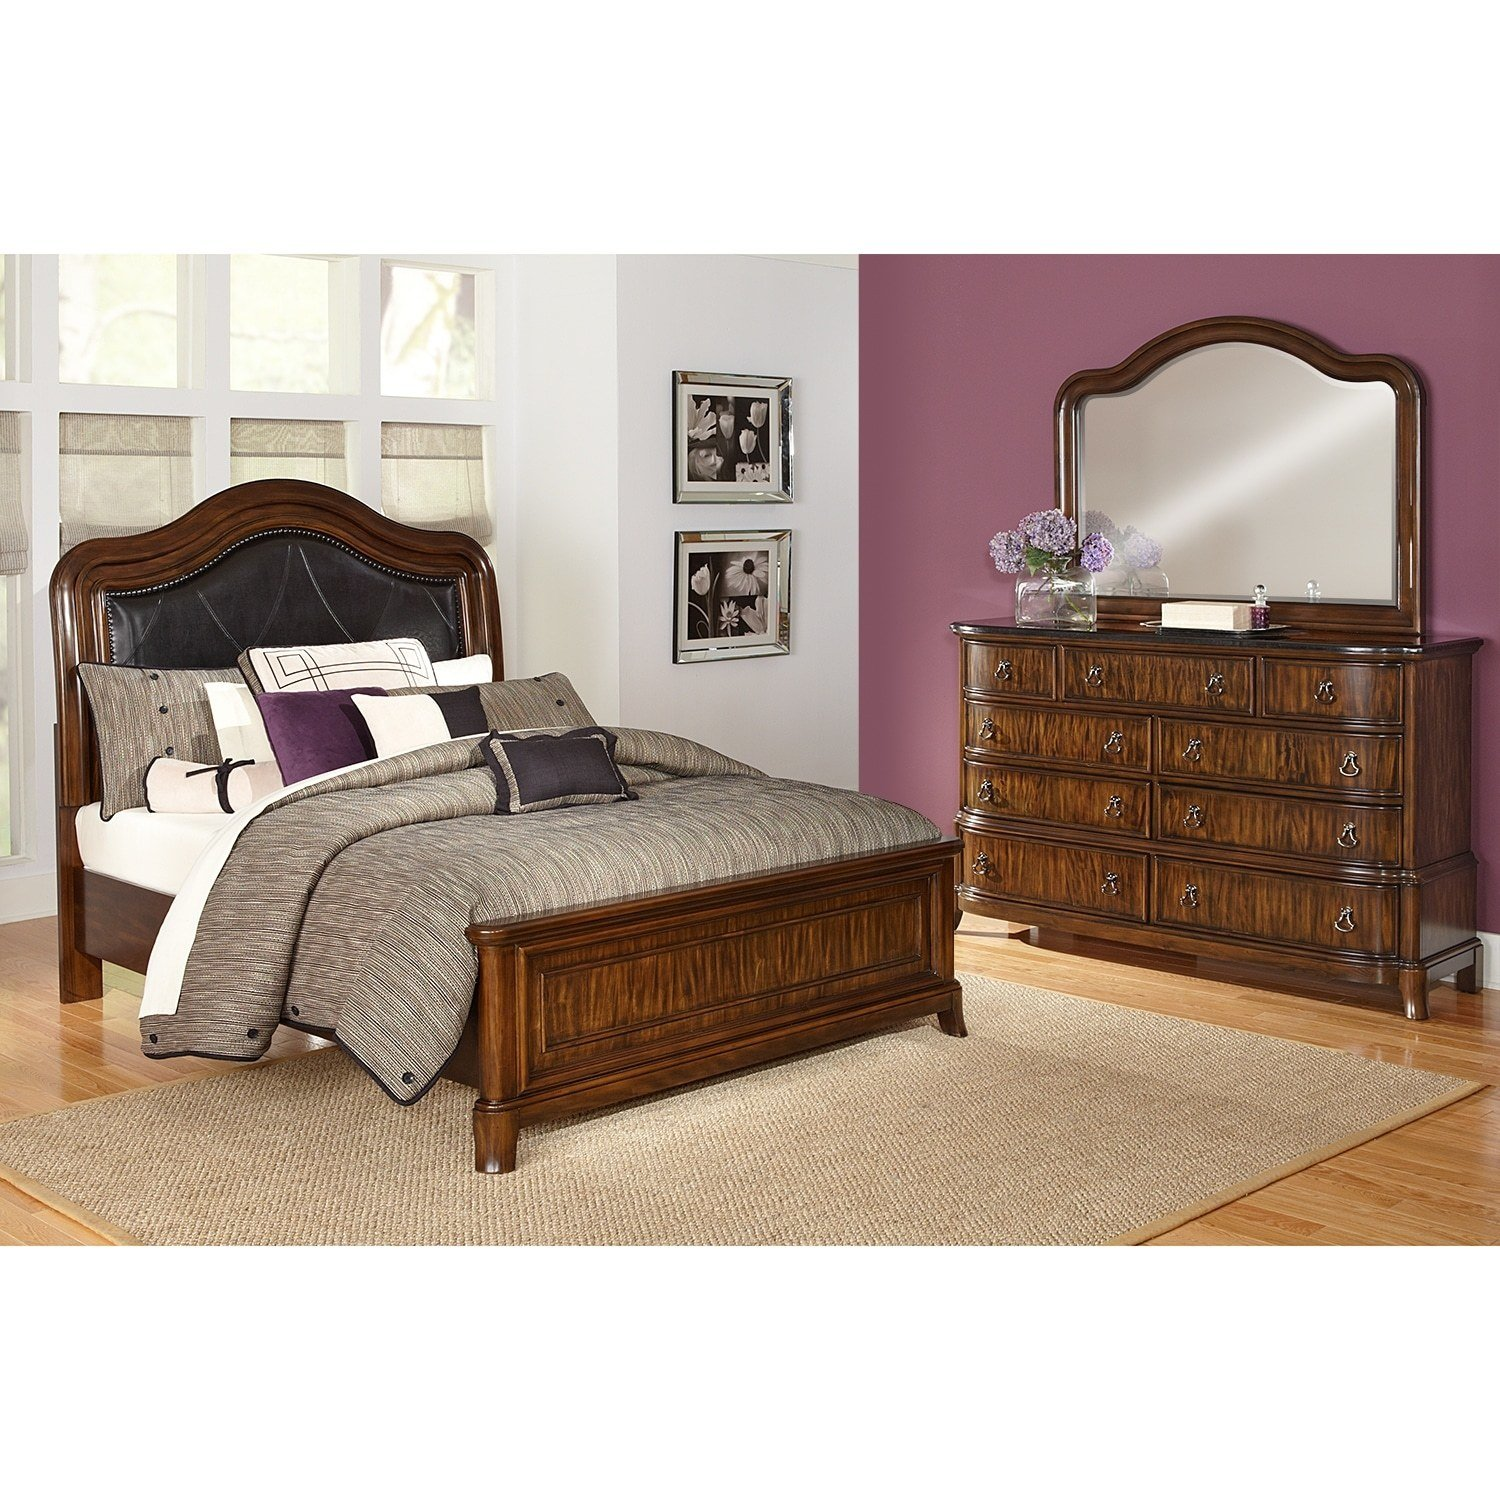 Best Kingston Bedroom 5 Pc King Bedroom Value City Furniture With Pictures